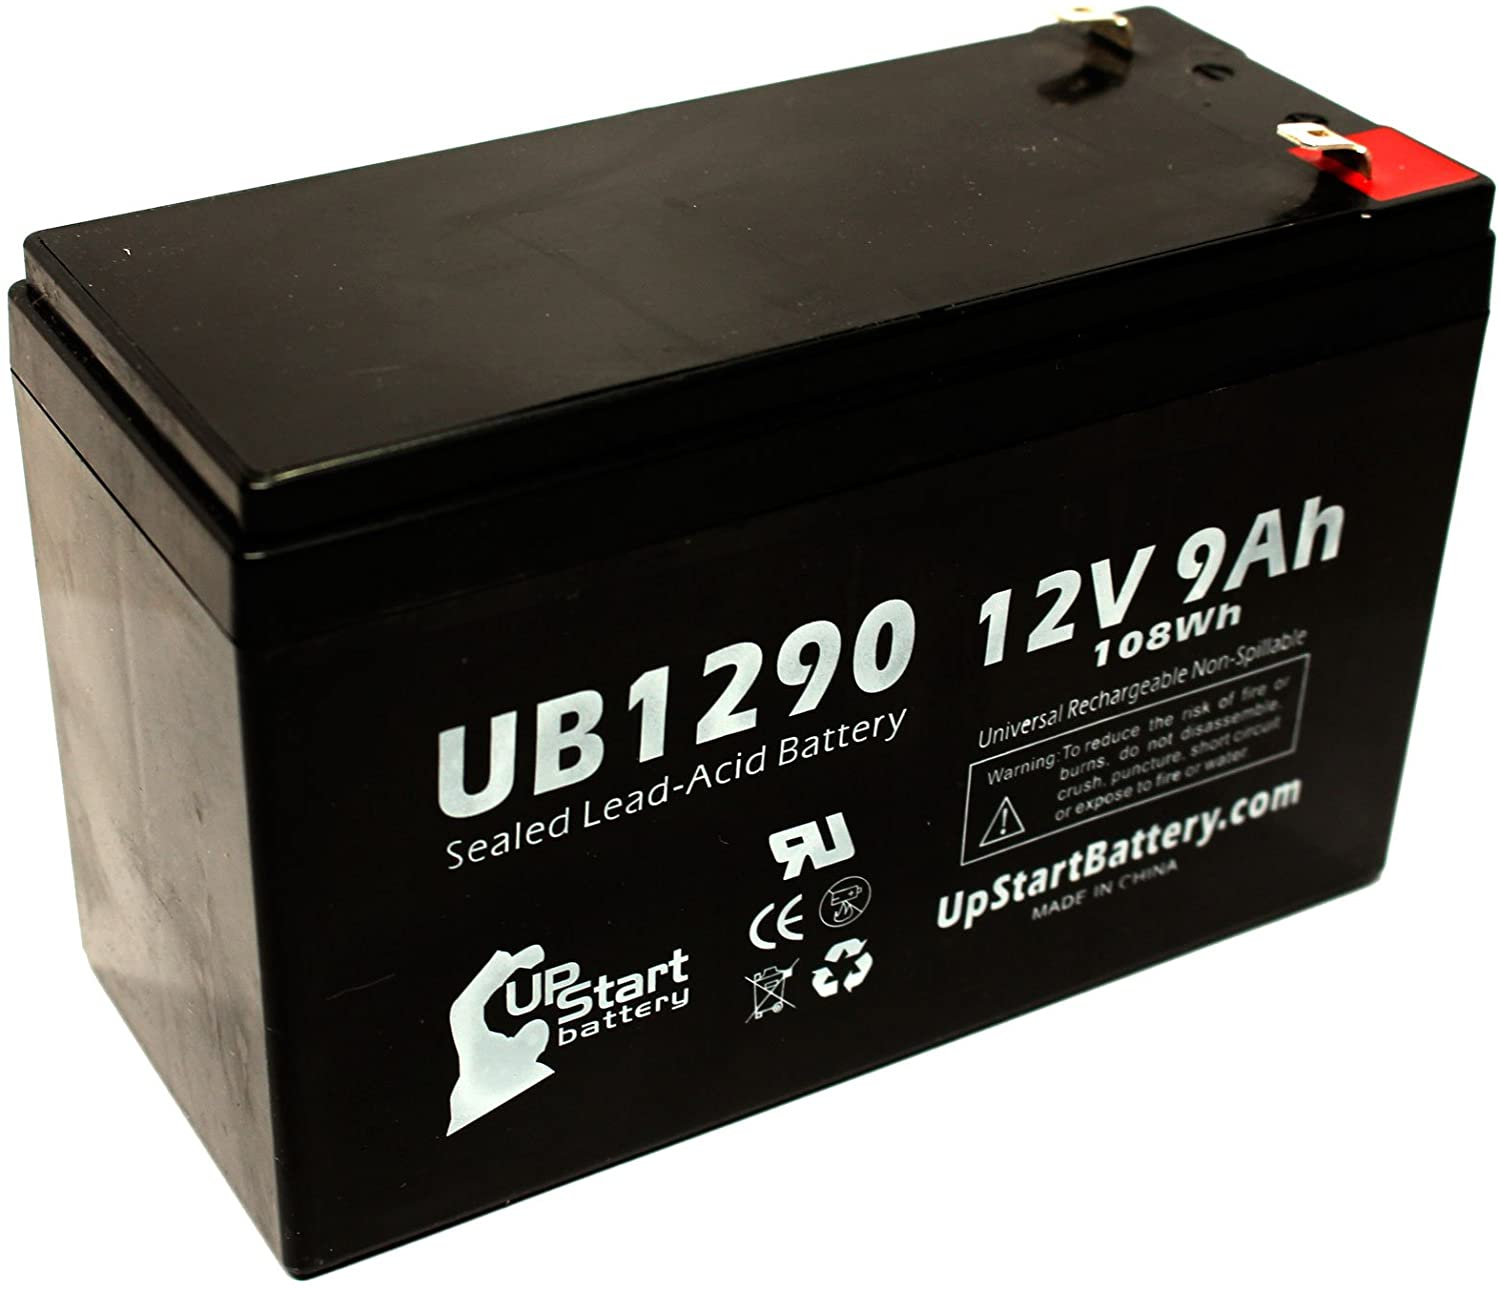 Replacement for Tripp Lite SMART1200XLHG Battery - Replacement UB1290 Universal Sealed Lead Acid Battery (12V, 9Ah, 9000mAh, F1 Terminal, AGM, SLA) - Includes Two F1 to F2 Terminal Adapters